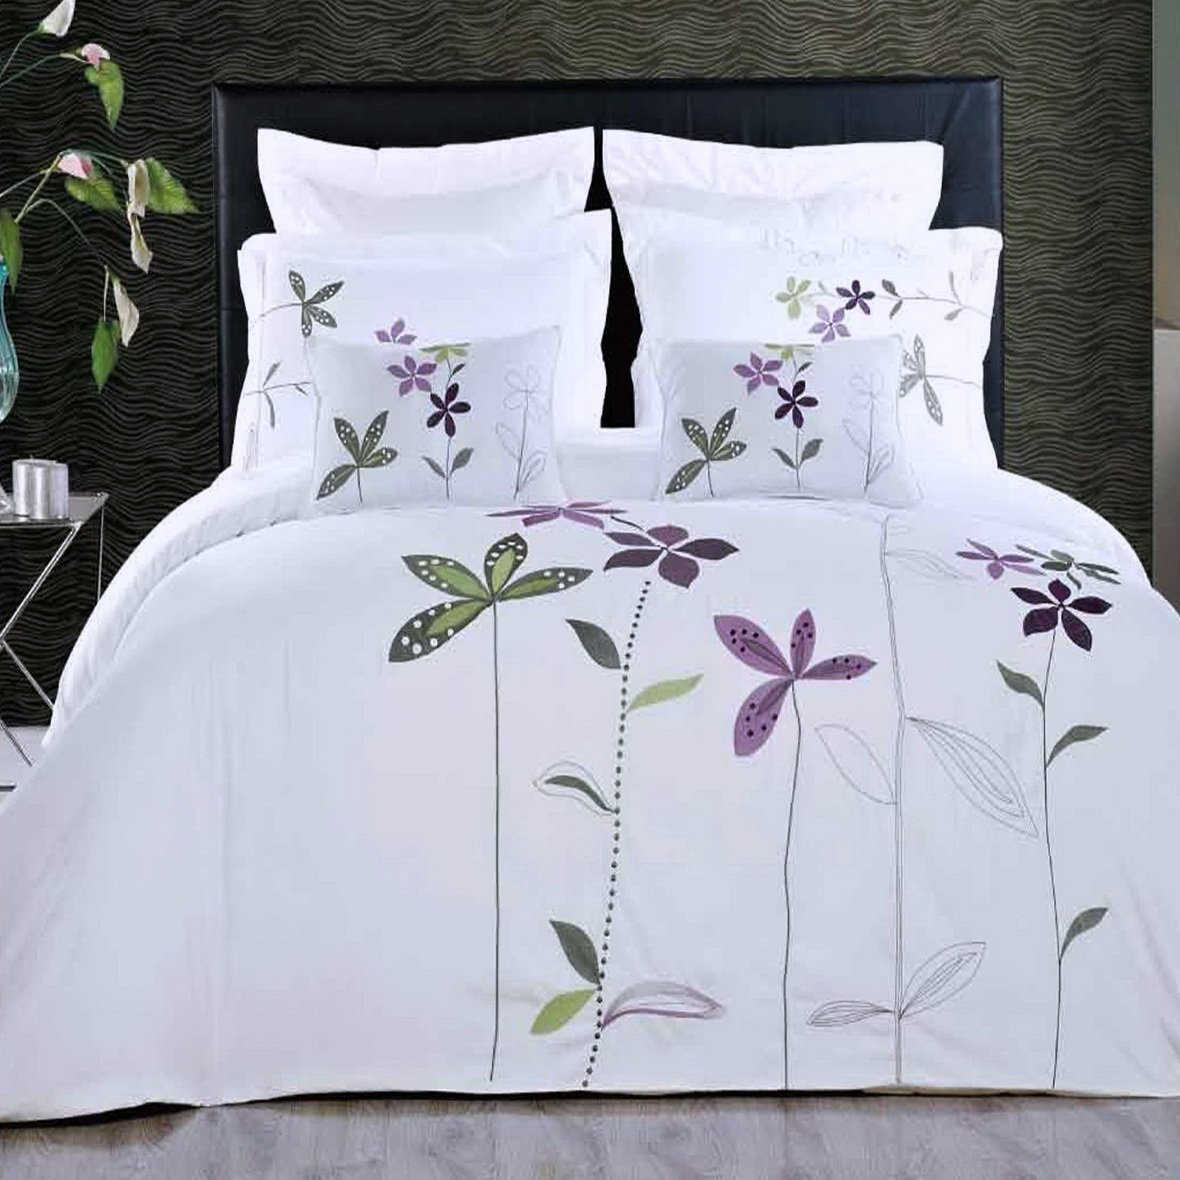 5 Piece Lightweight Bedding and Pillows Pillowcases Set